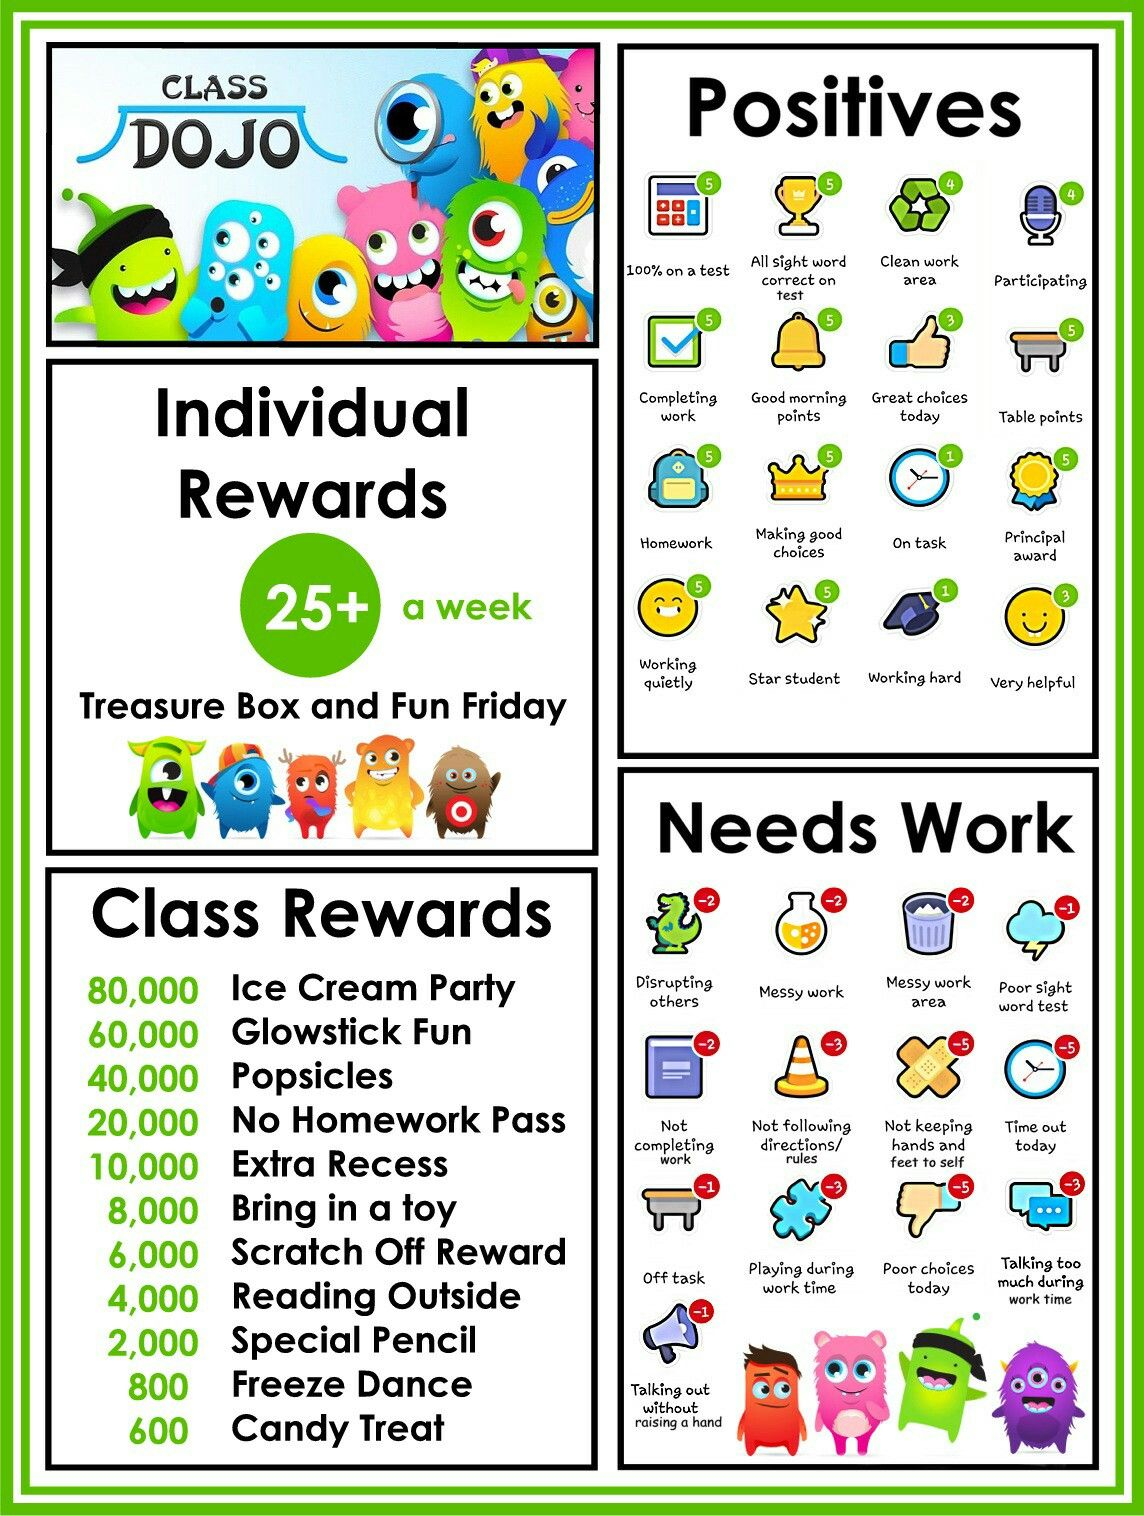 Parenting Classes Class dojo, Teaching classroom